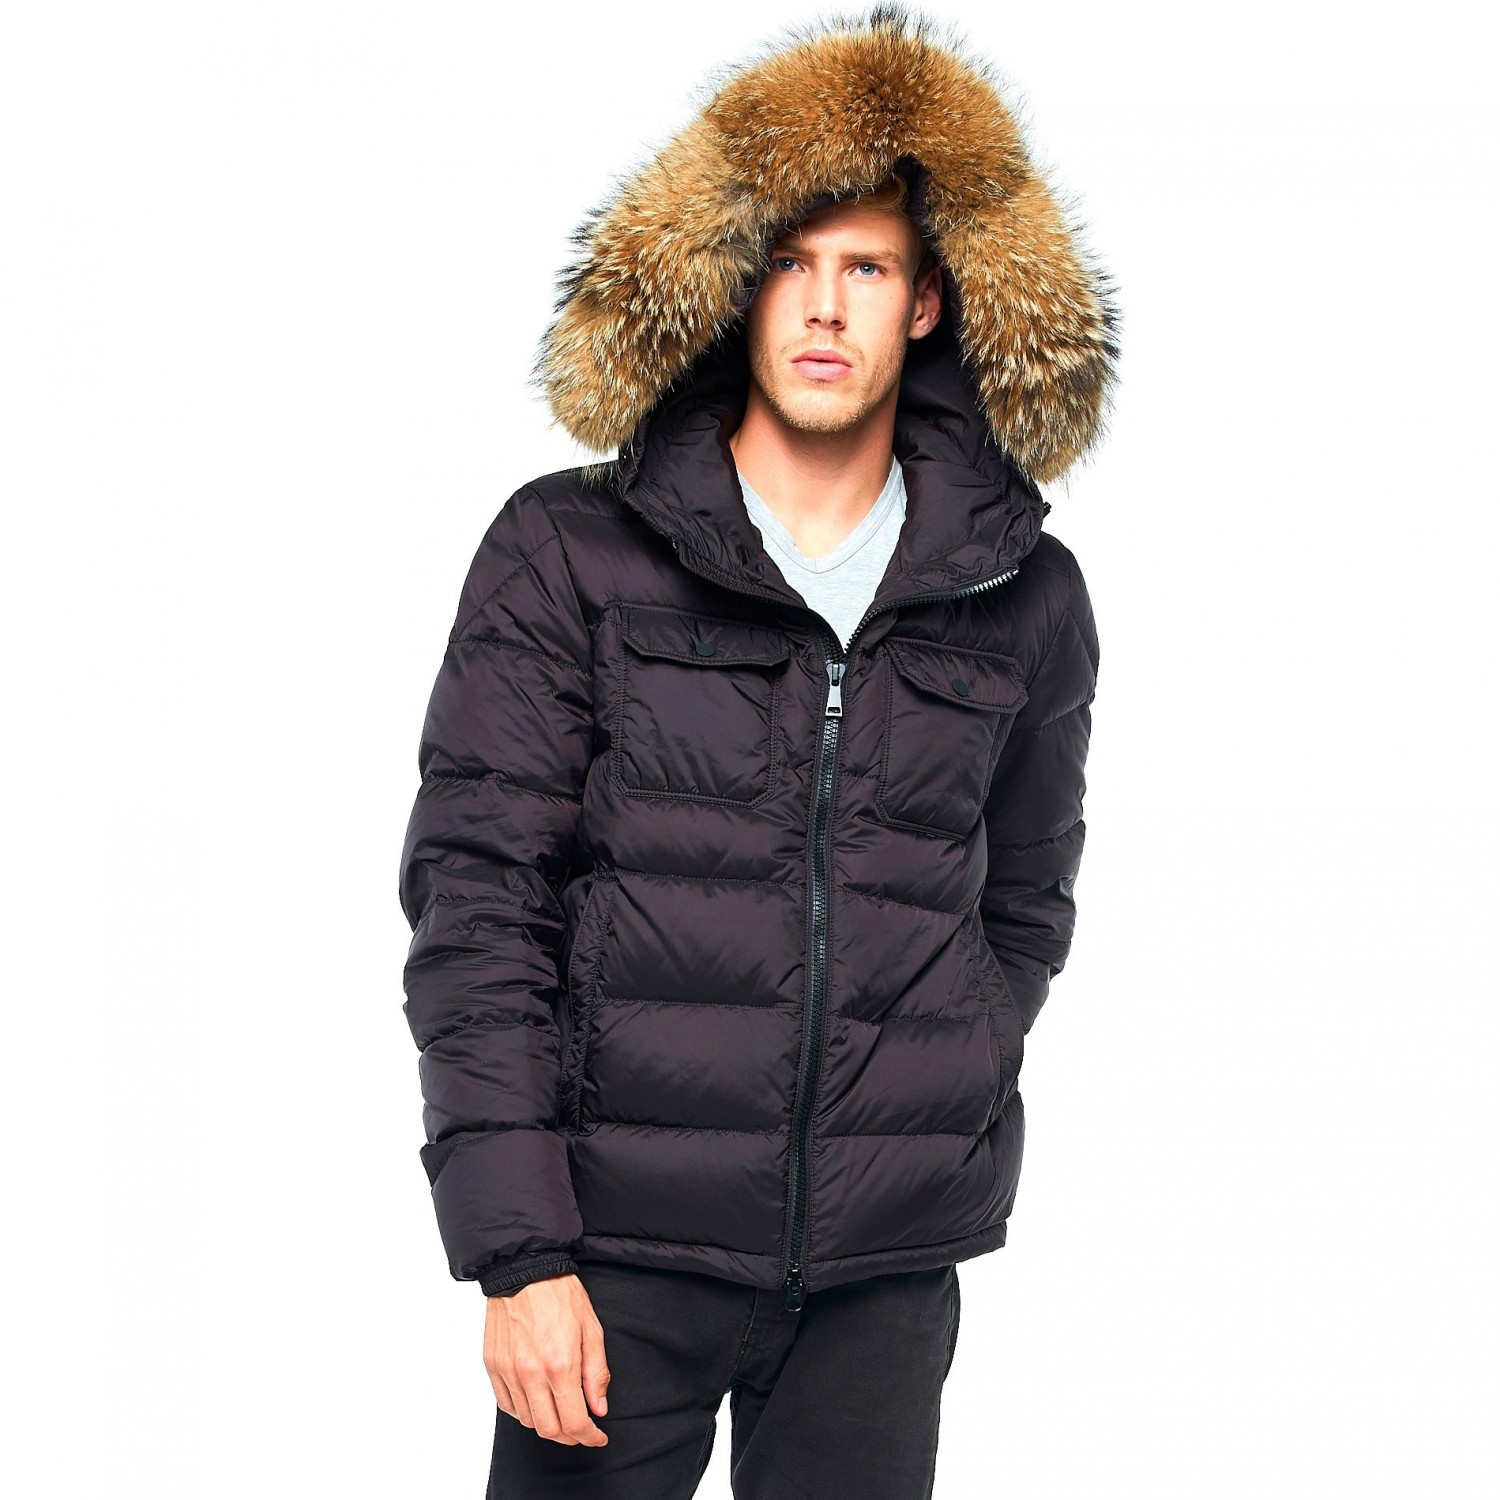 6056a22c5d82c Mens Winter Jacket Furhood Realfur Downjacket ...